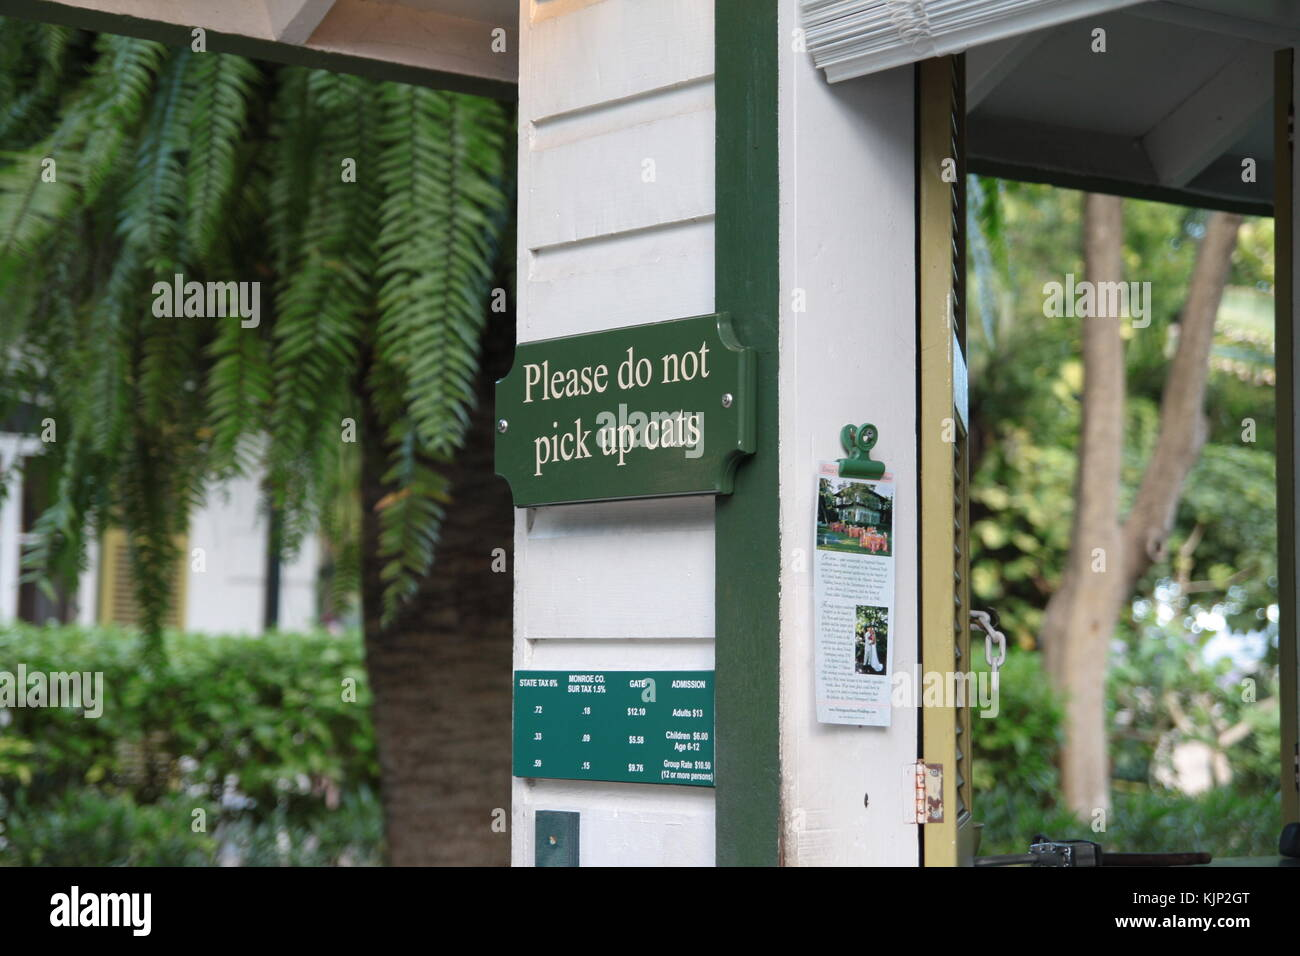 A signboard asks not to pick up cats at Ernest Hemingway house in Key West, Florida. Stock Photo